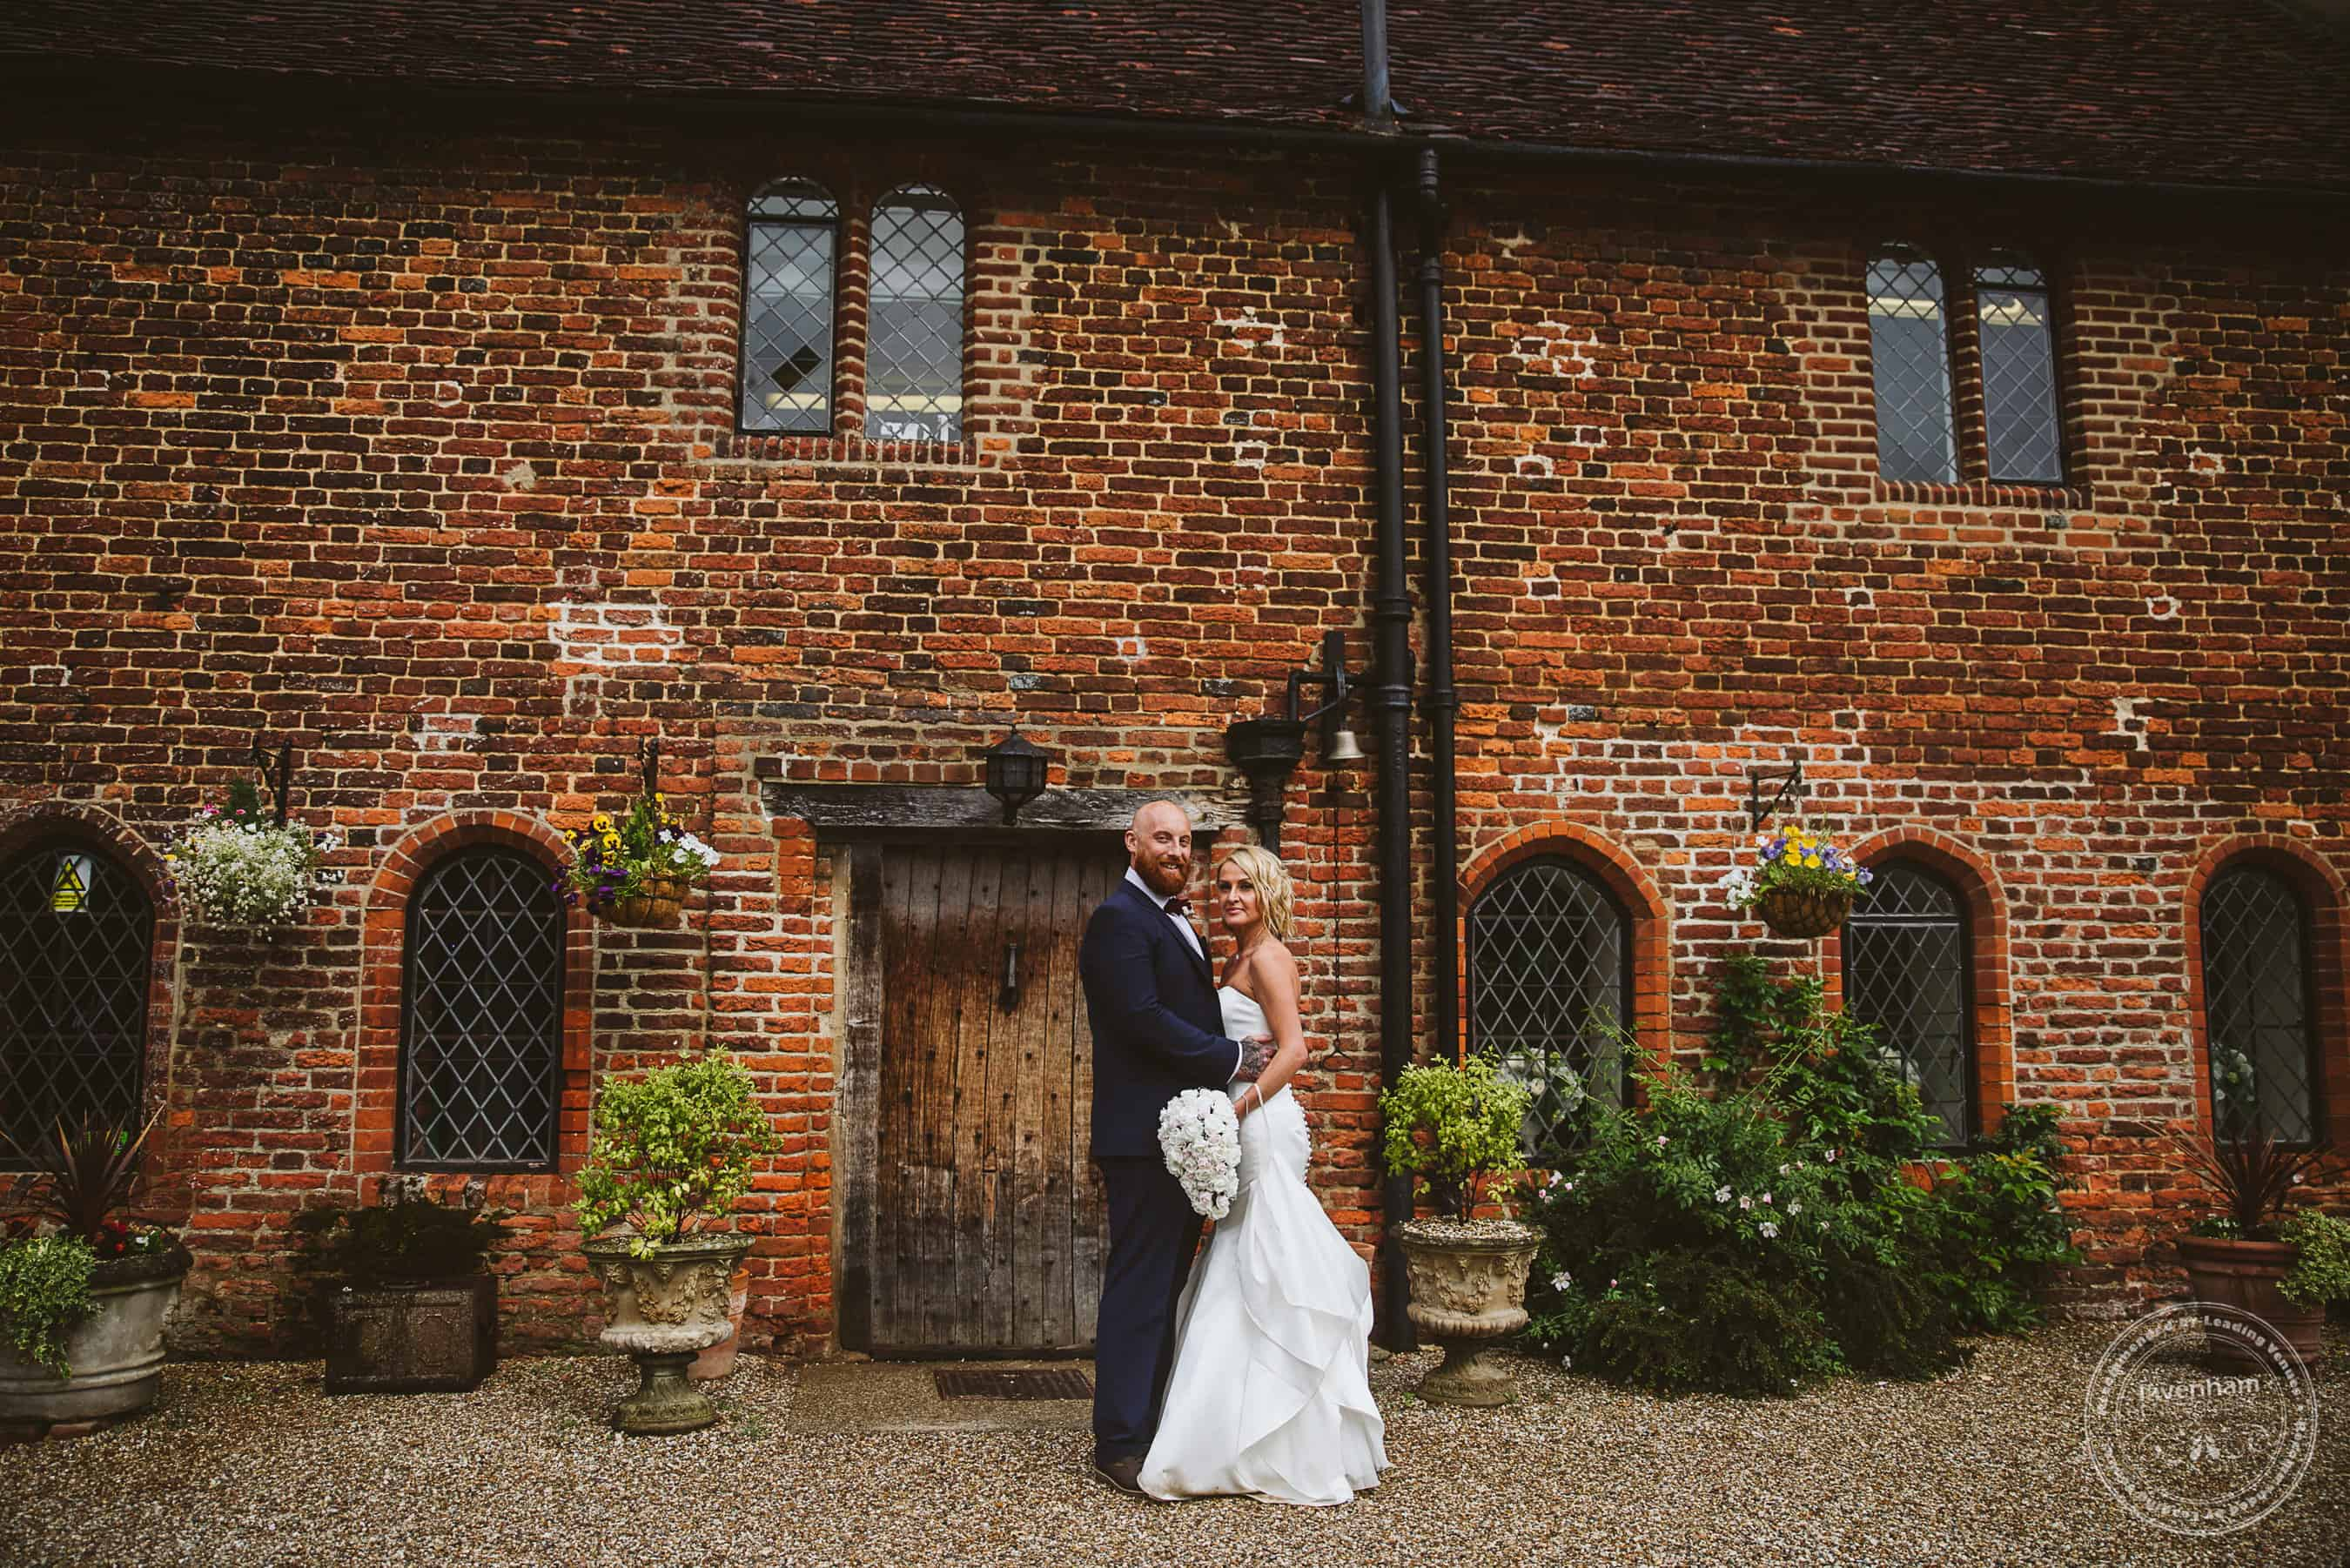 290518 Leez Priory Wedding Photography Lavenham Photographic 126